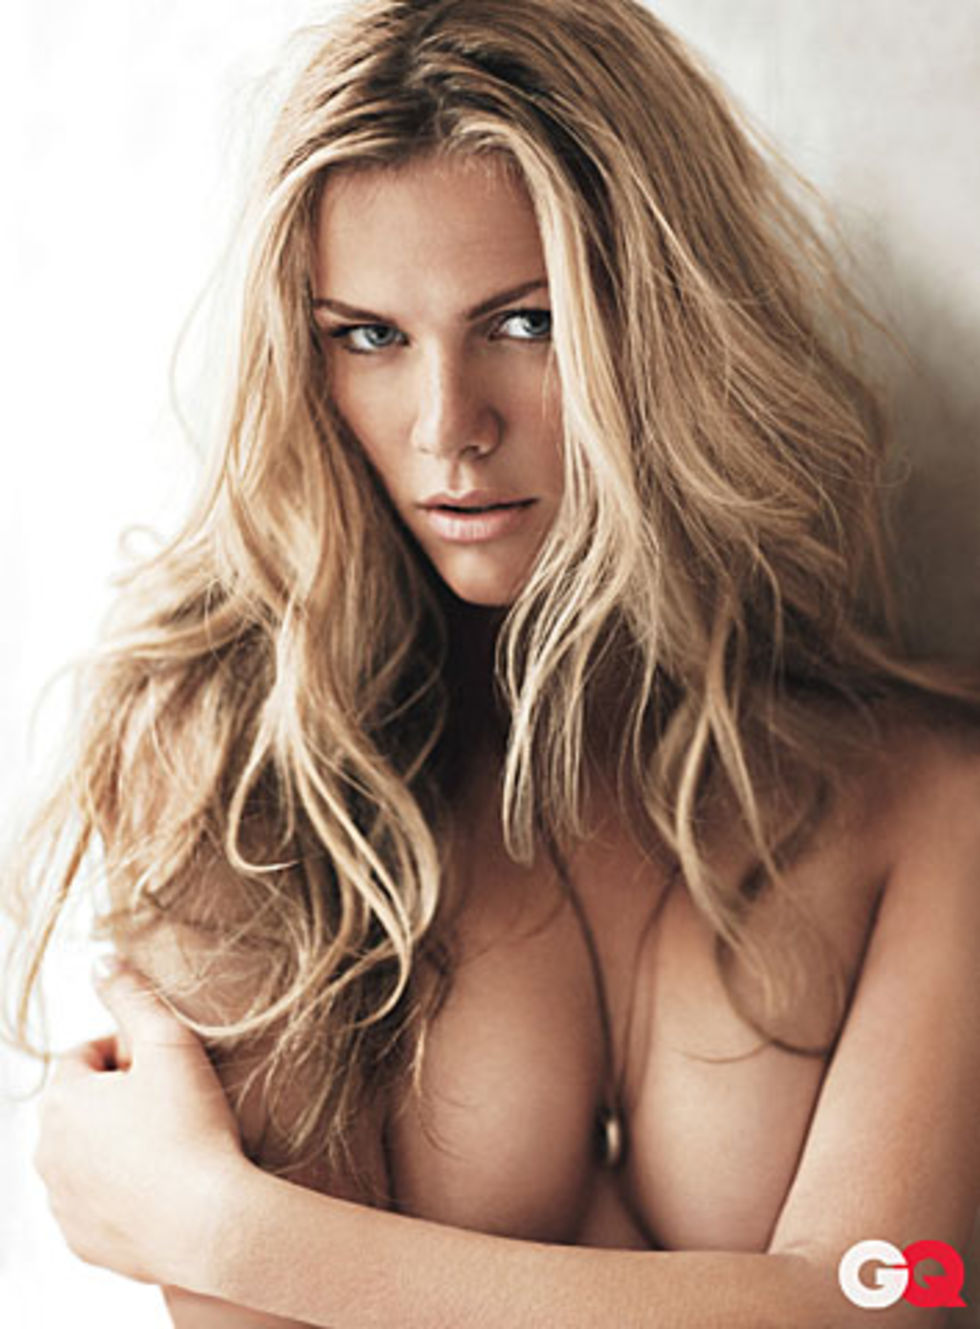 brooklyn decker â€